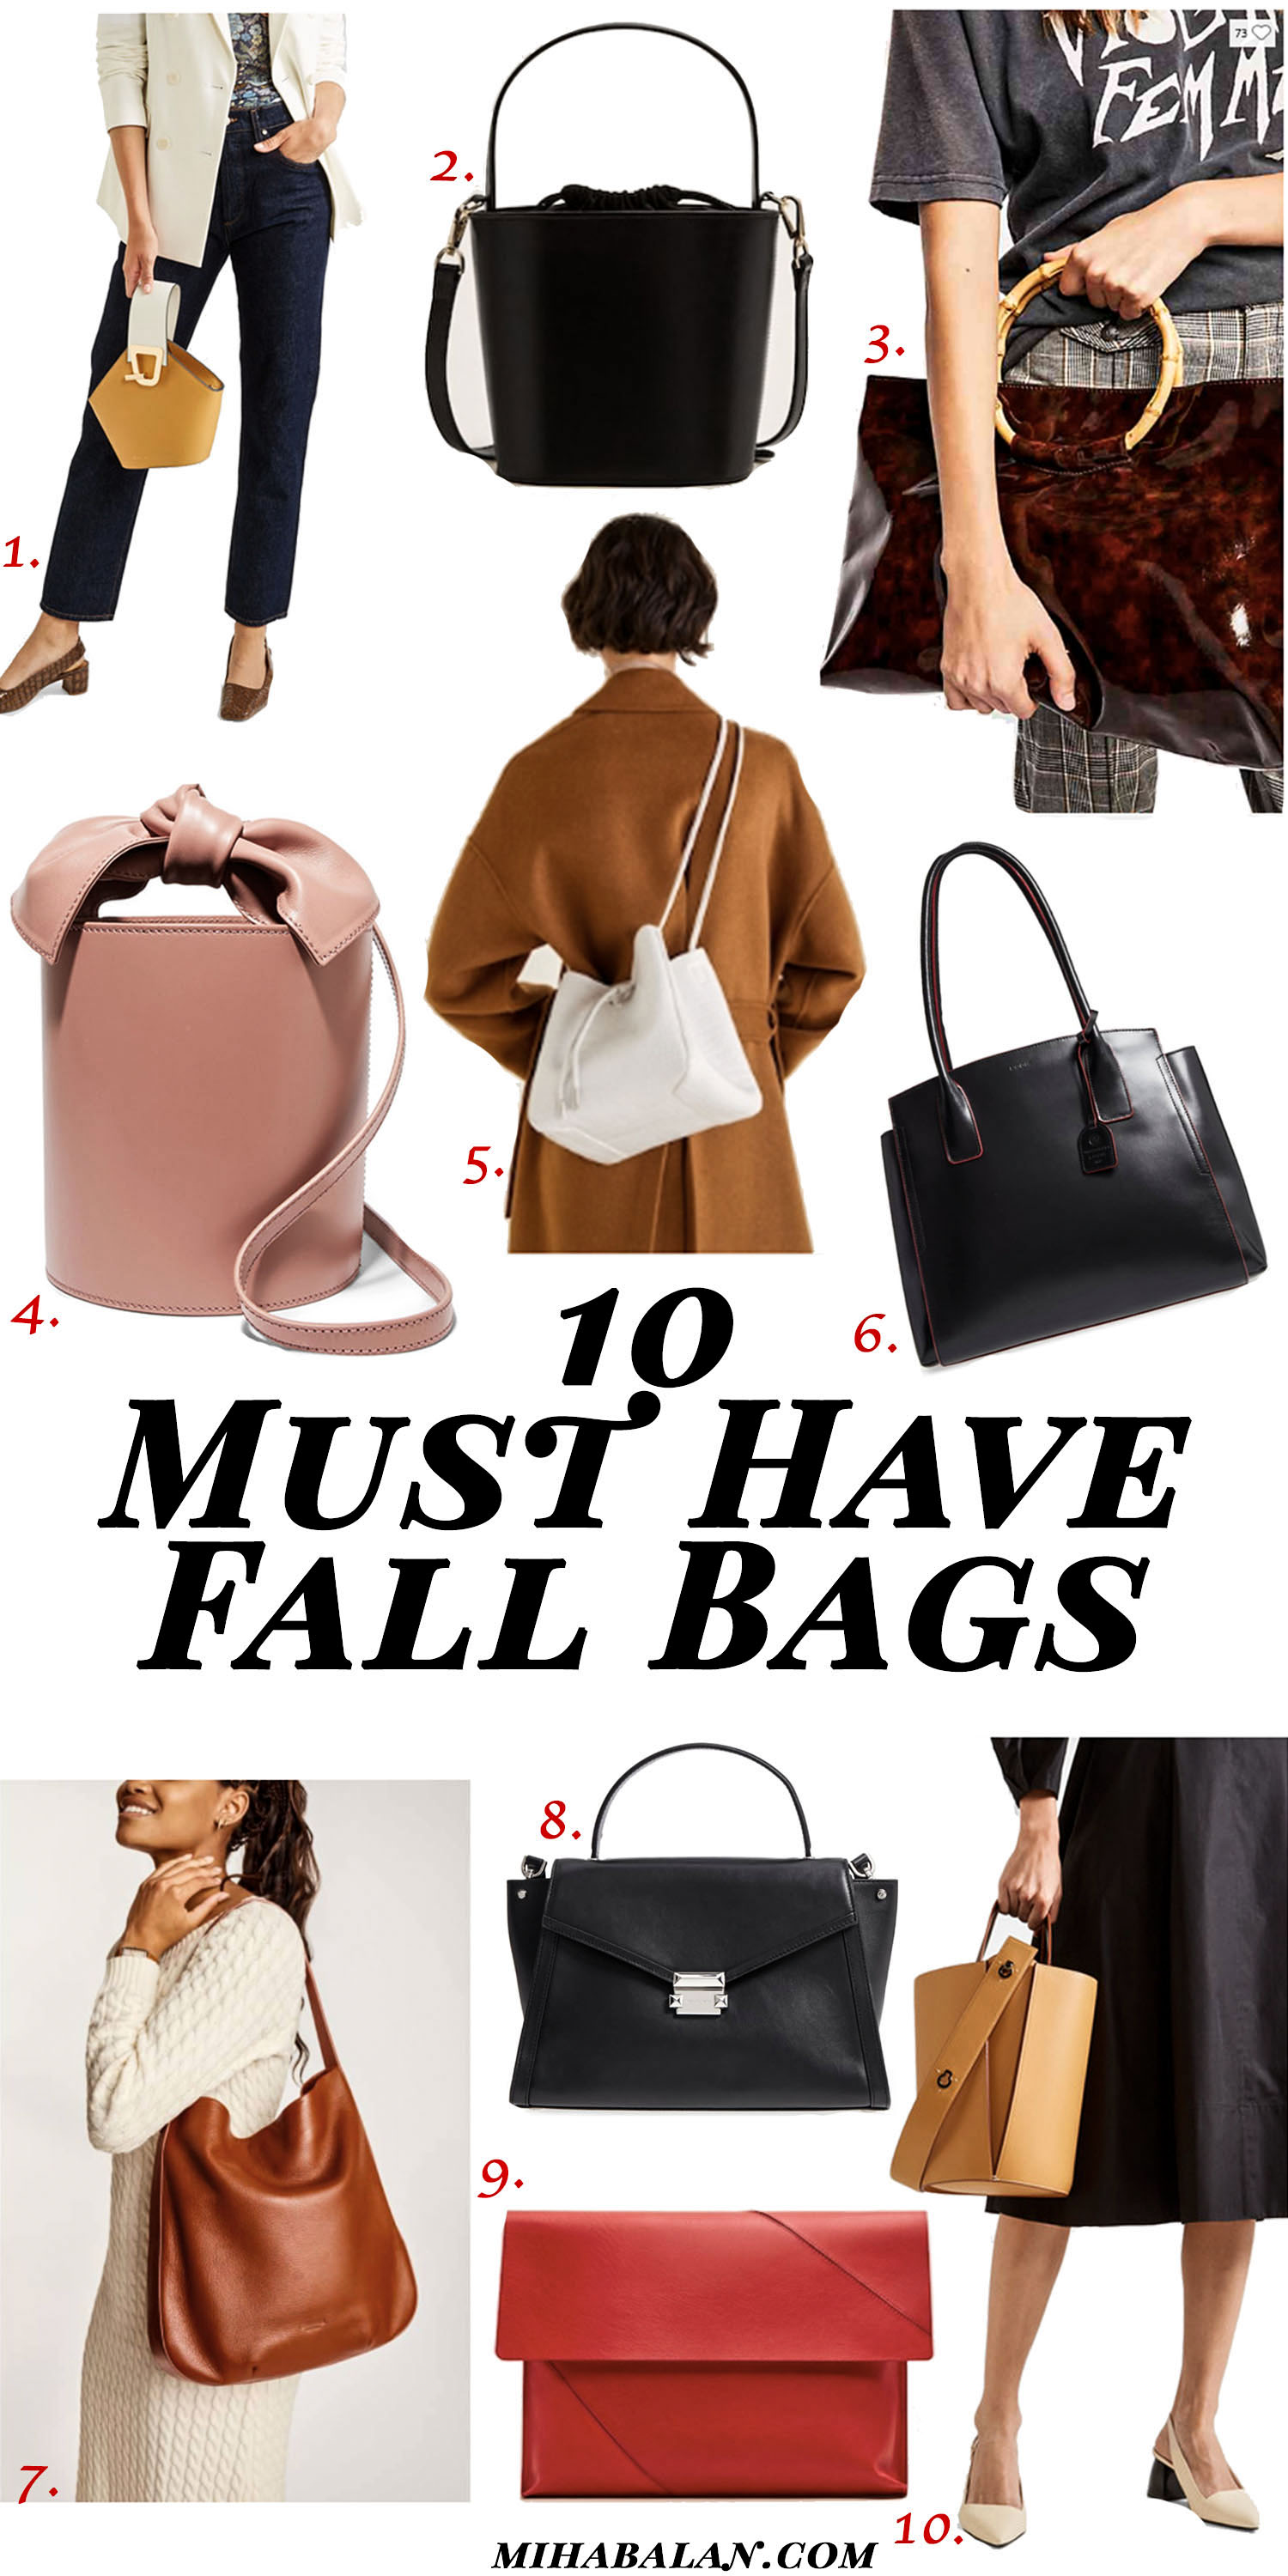 10 must have fall bags, bags to match every fall outfit, fall accessory, fall fashion